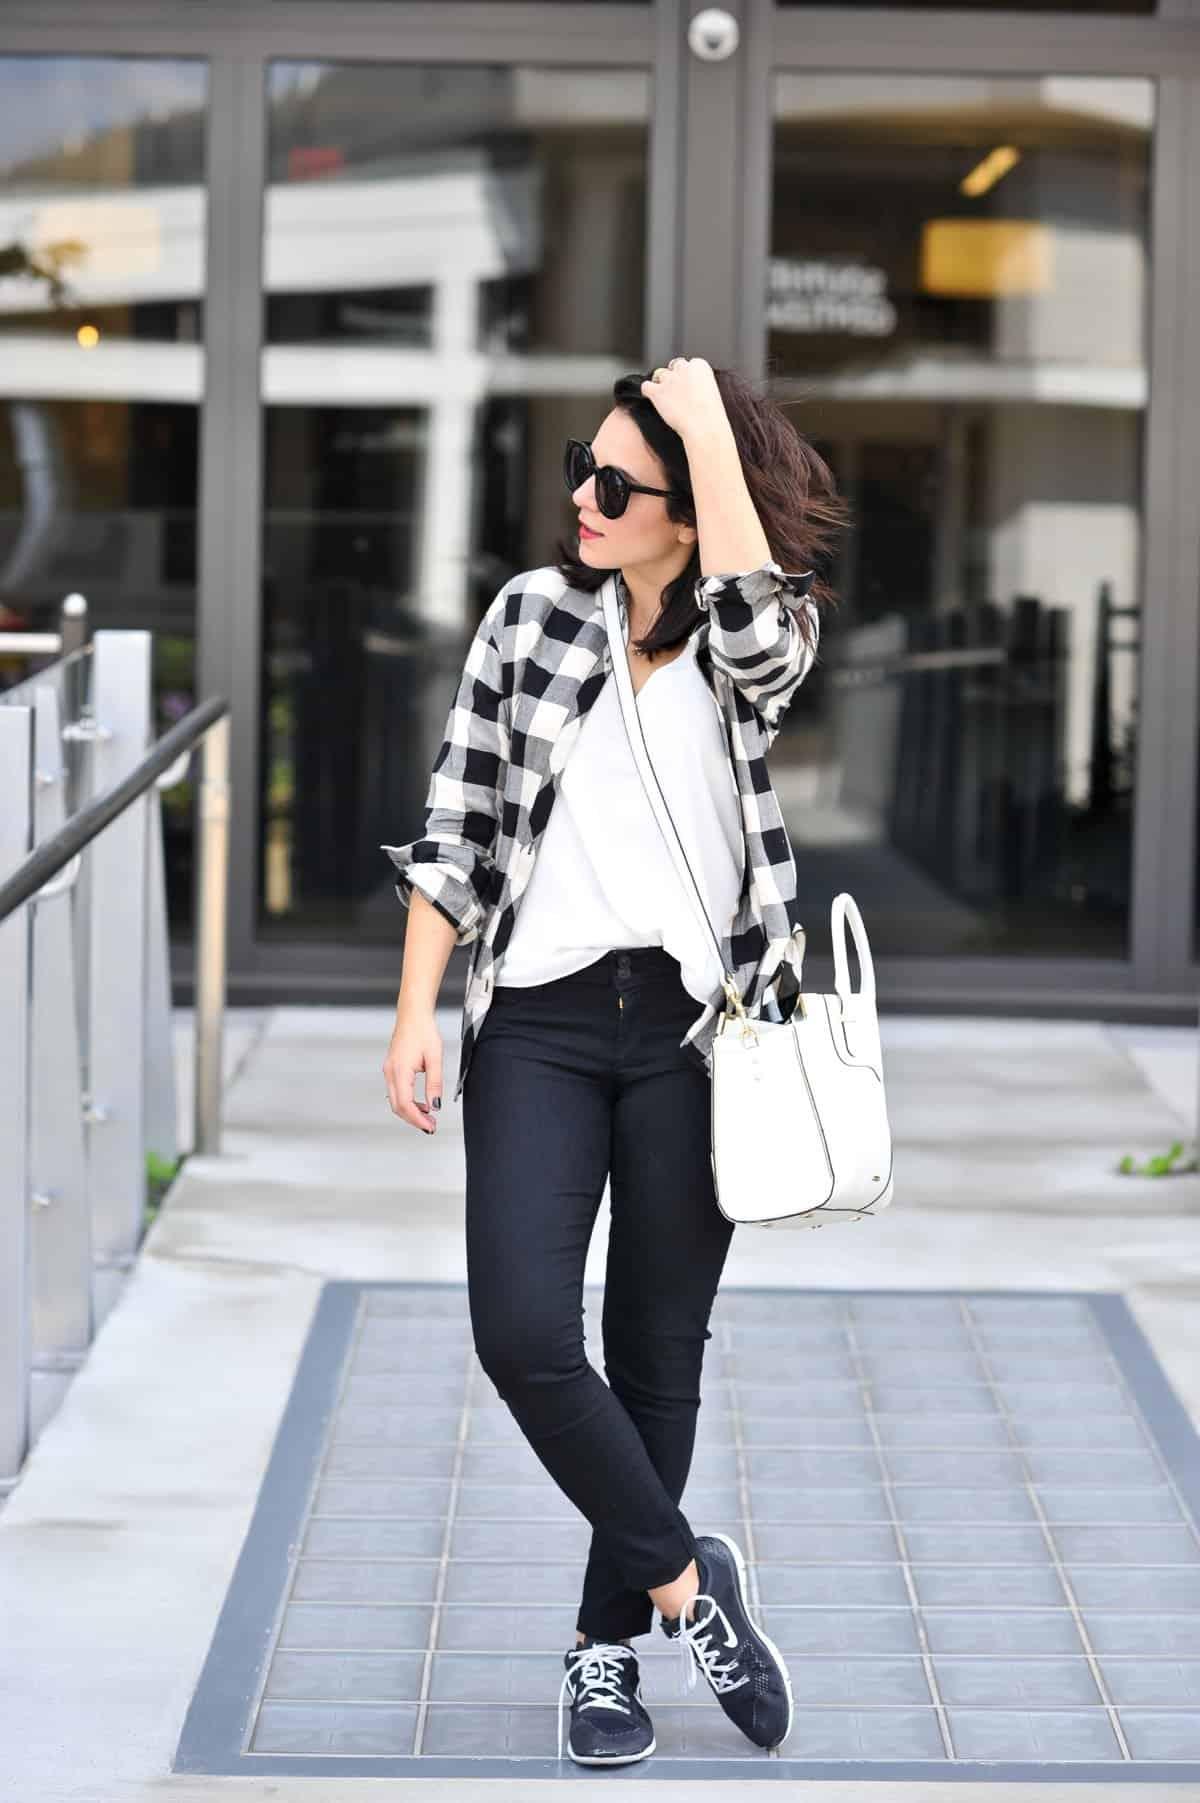 cfc879b8fb6b How To Style Sneakers Like A Fashion Blogger - My Style Vita